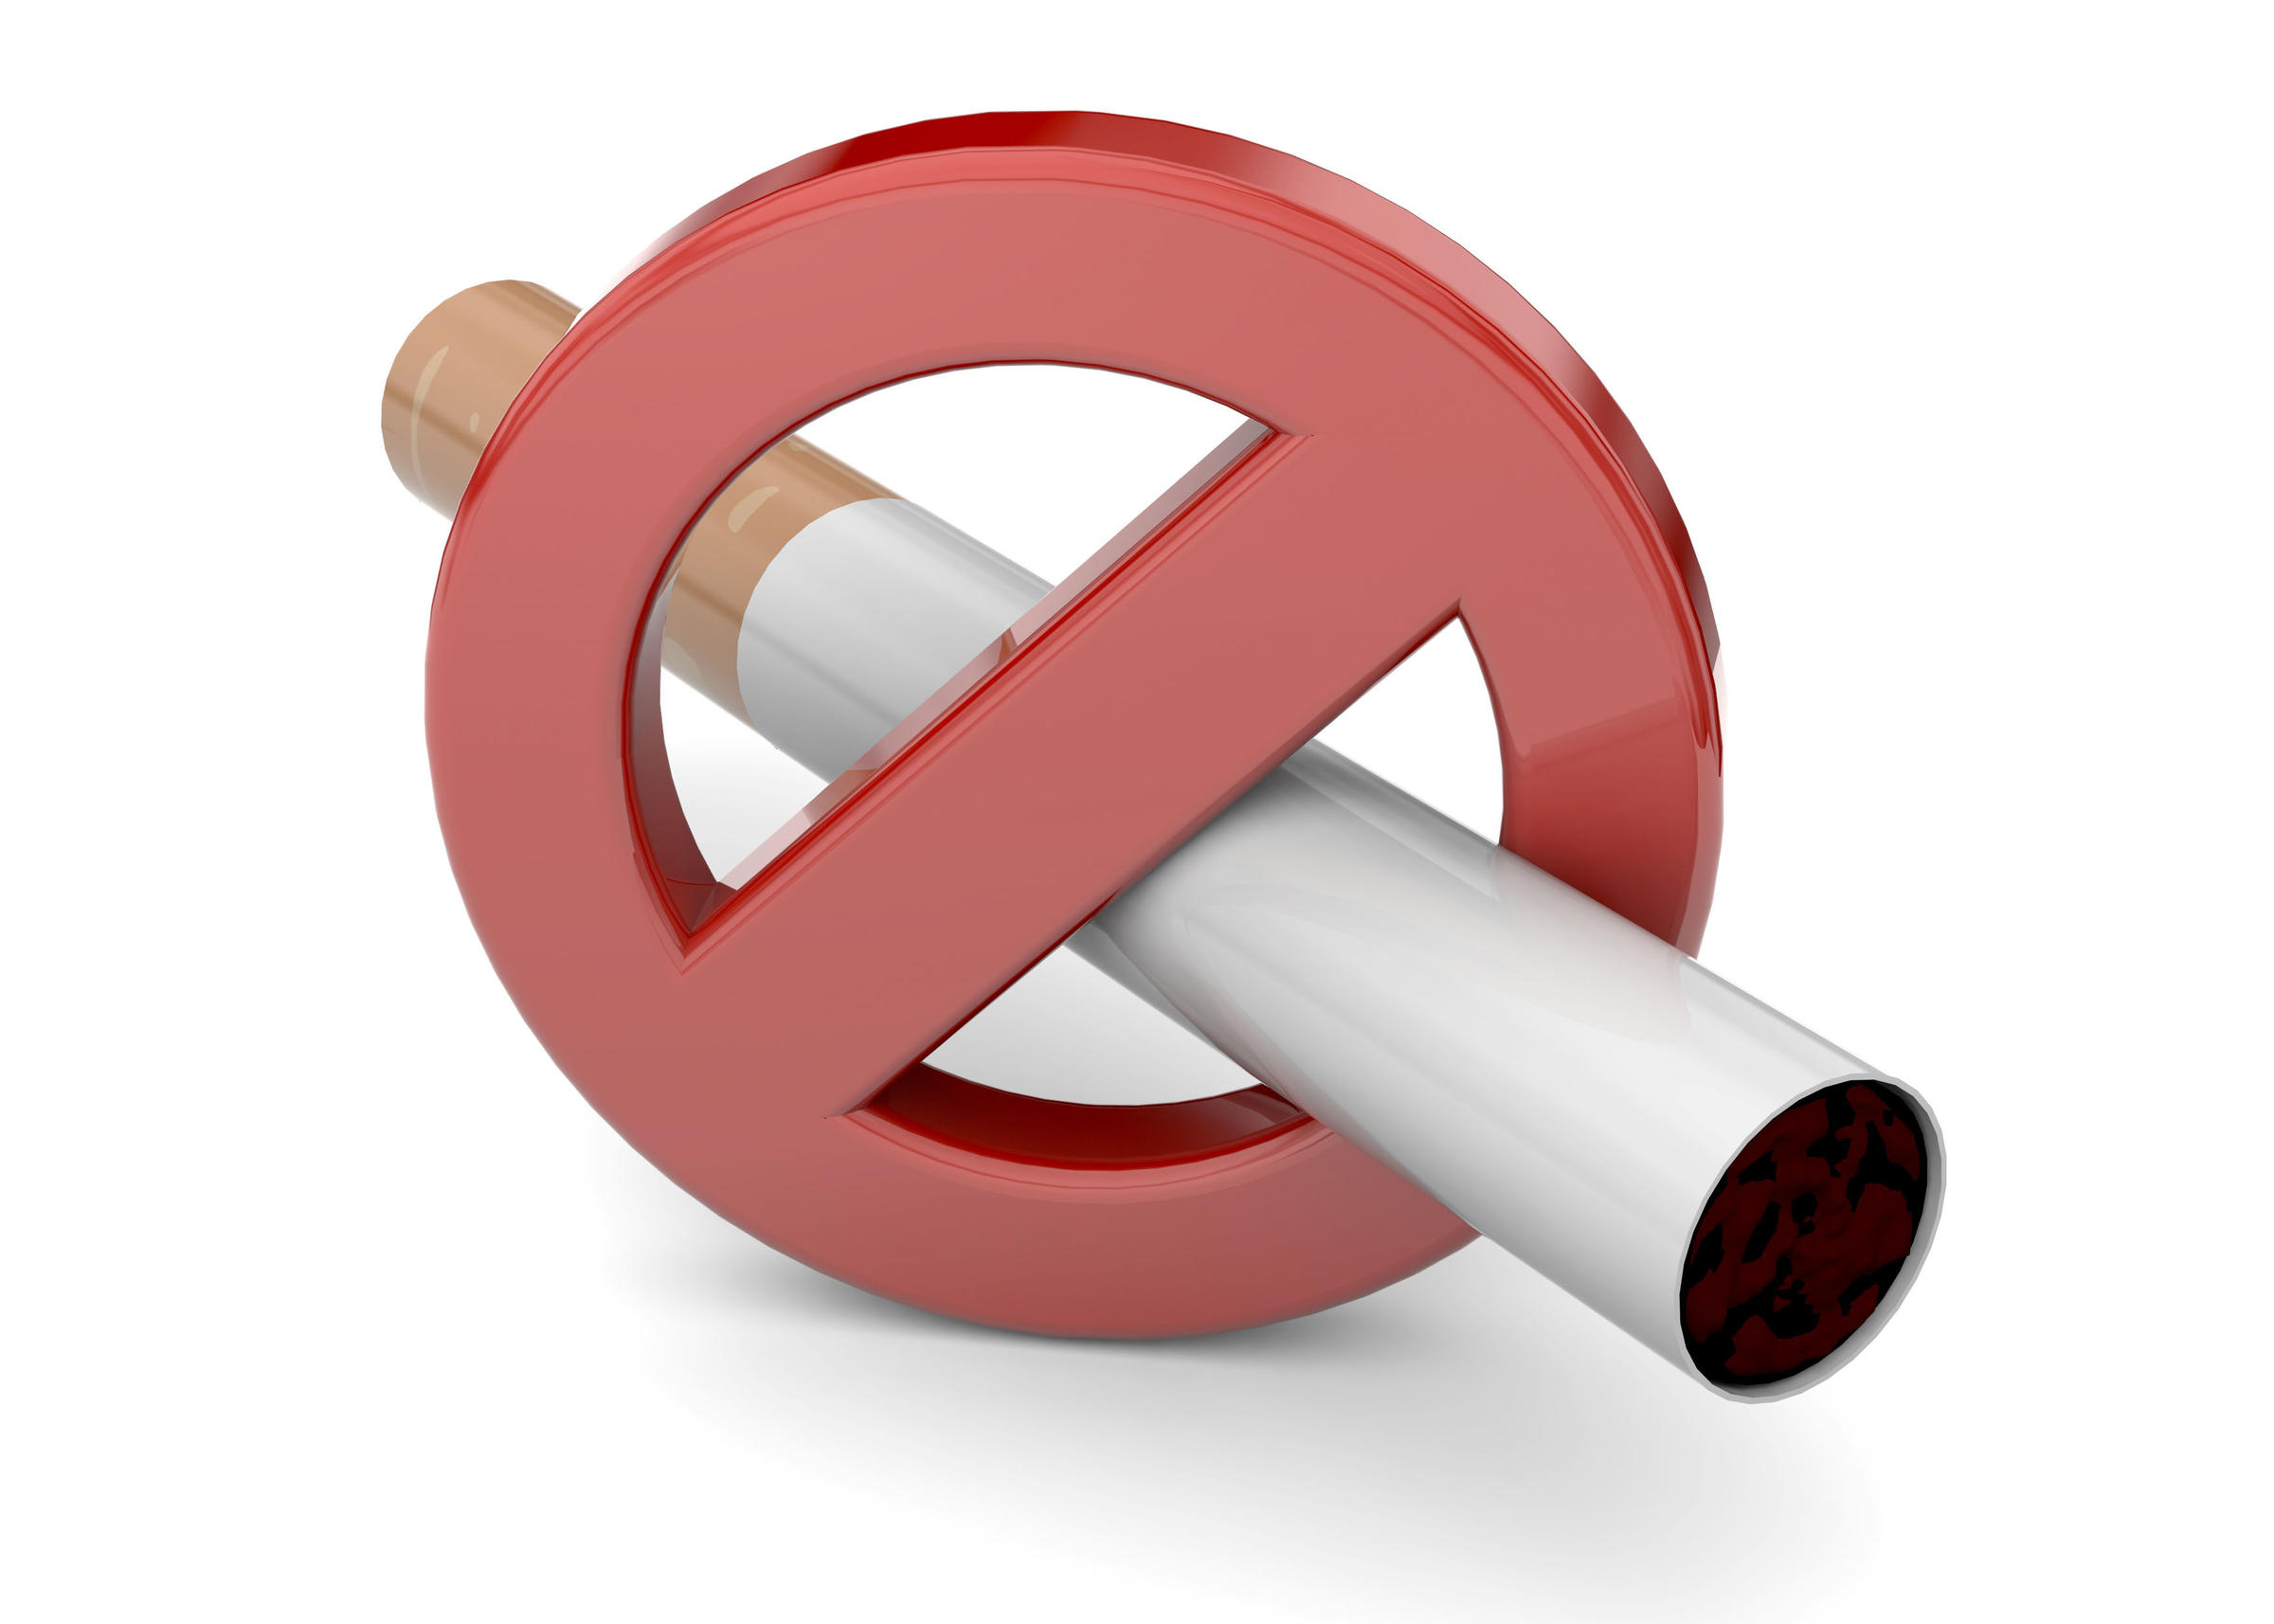 smoking ban Japan has approved its first national smoking ban, but the watered-down measure excludes many restaurants and bars and is seen as toothless.